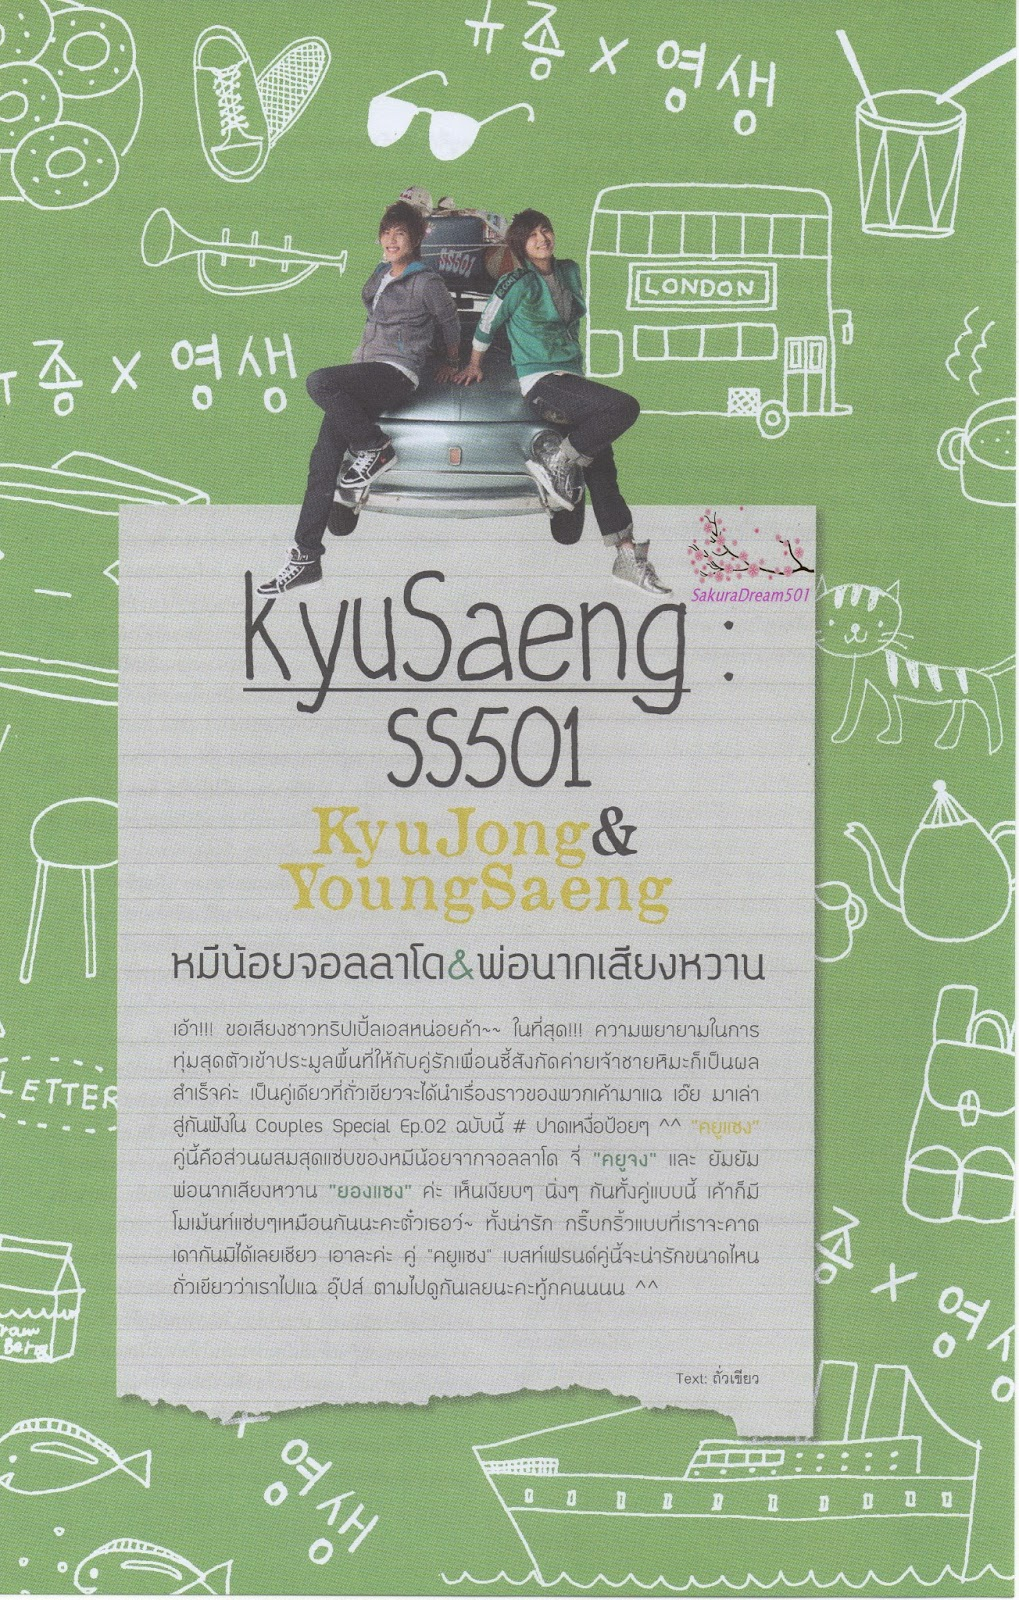 E2556 06 28 13 38 28 0006 [Scan] Kim Kyu Jong & Heo Young Saeng   Featured on TBK Couples Special Ep.02 (Thai Magazine)